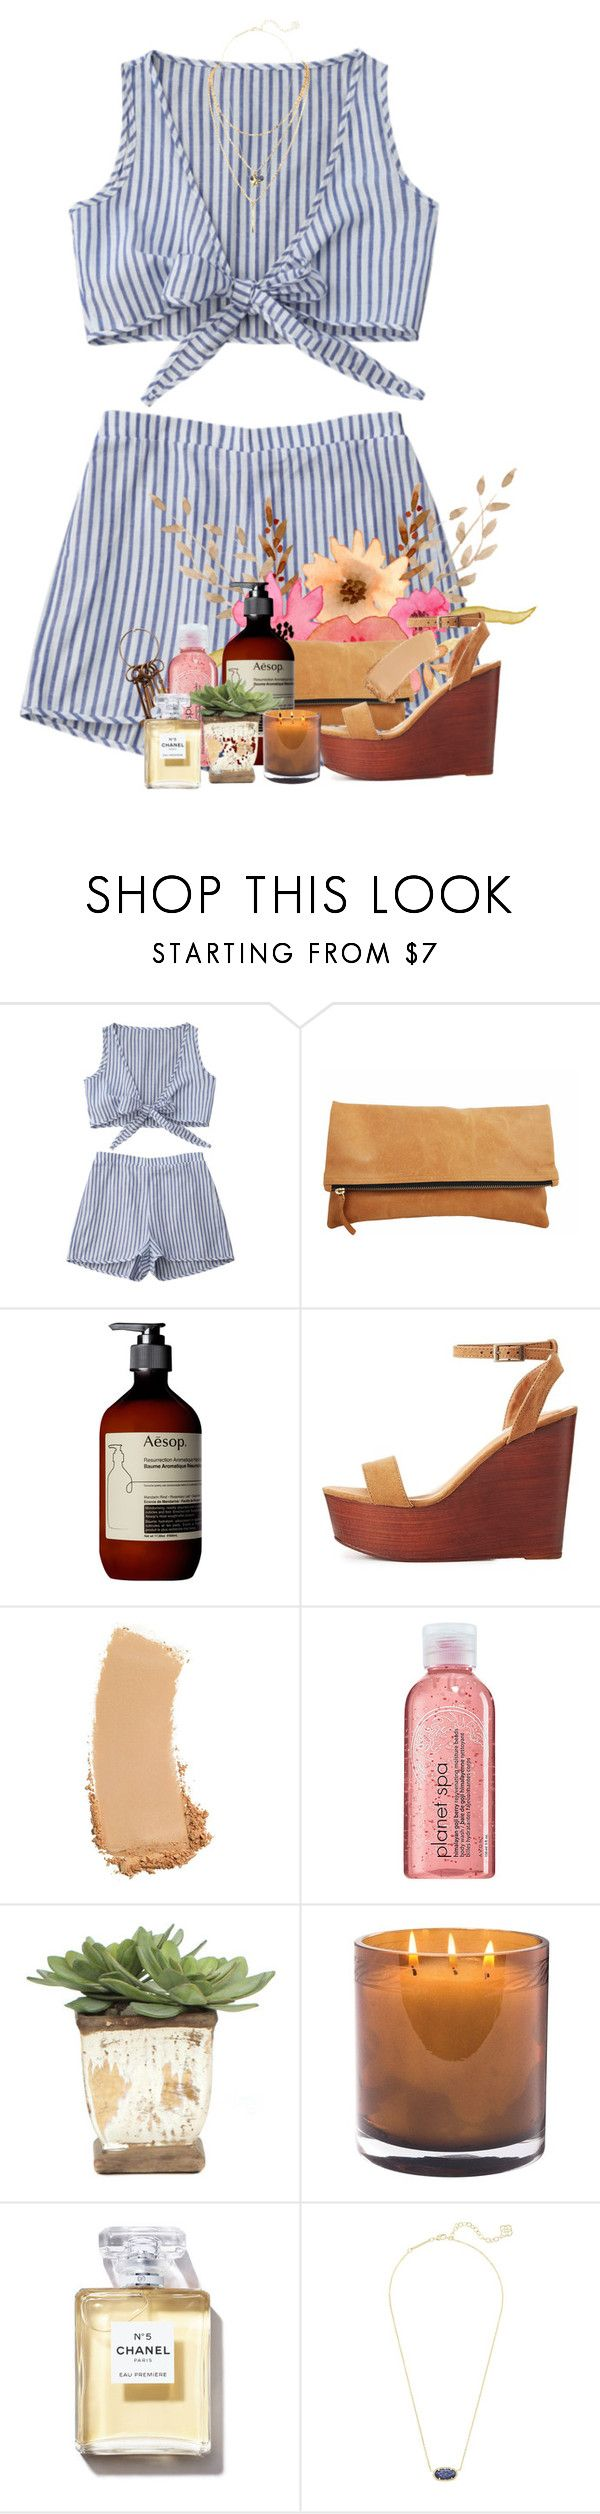 """Rest of my day in the d"" by livnewell ❤ liked on Polyvore featuring Aesop, Bamboo, Gucci, Avon, Lux-Art Silks, Laura Mercier, Chanel and Kendra Scott"